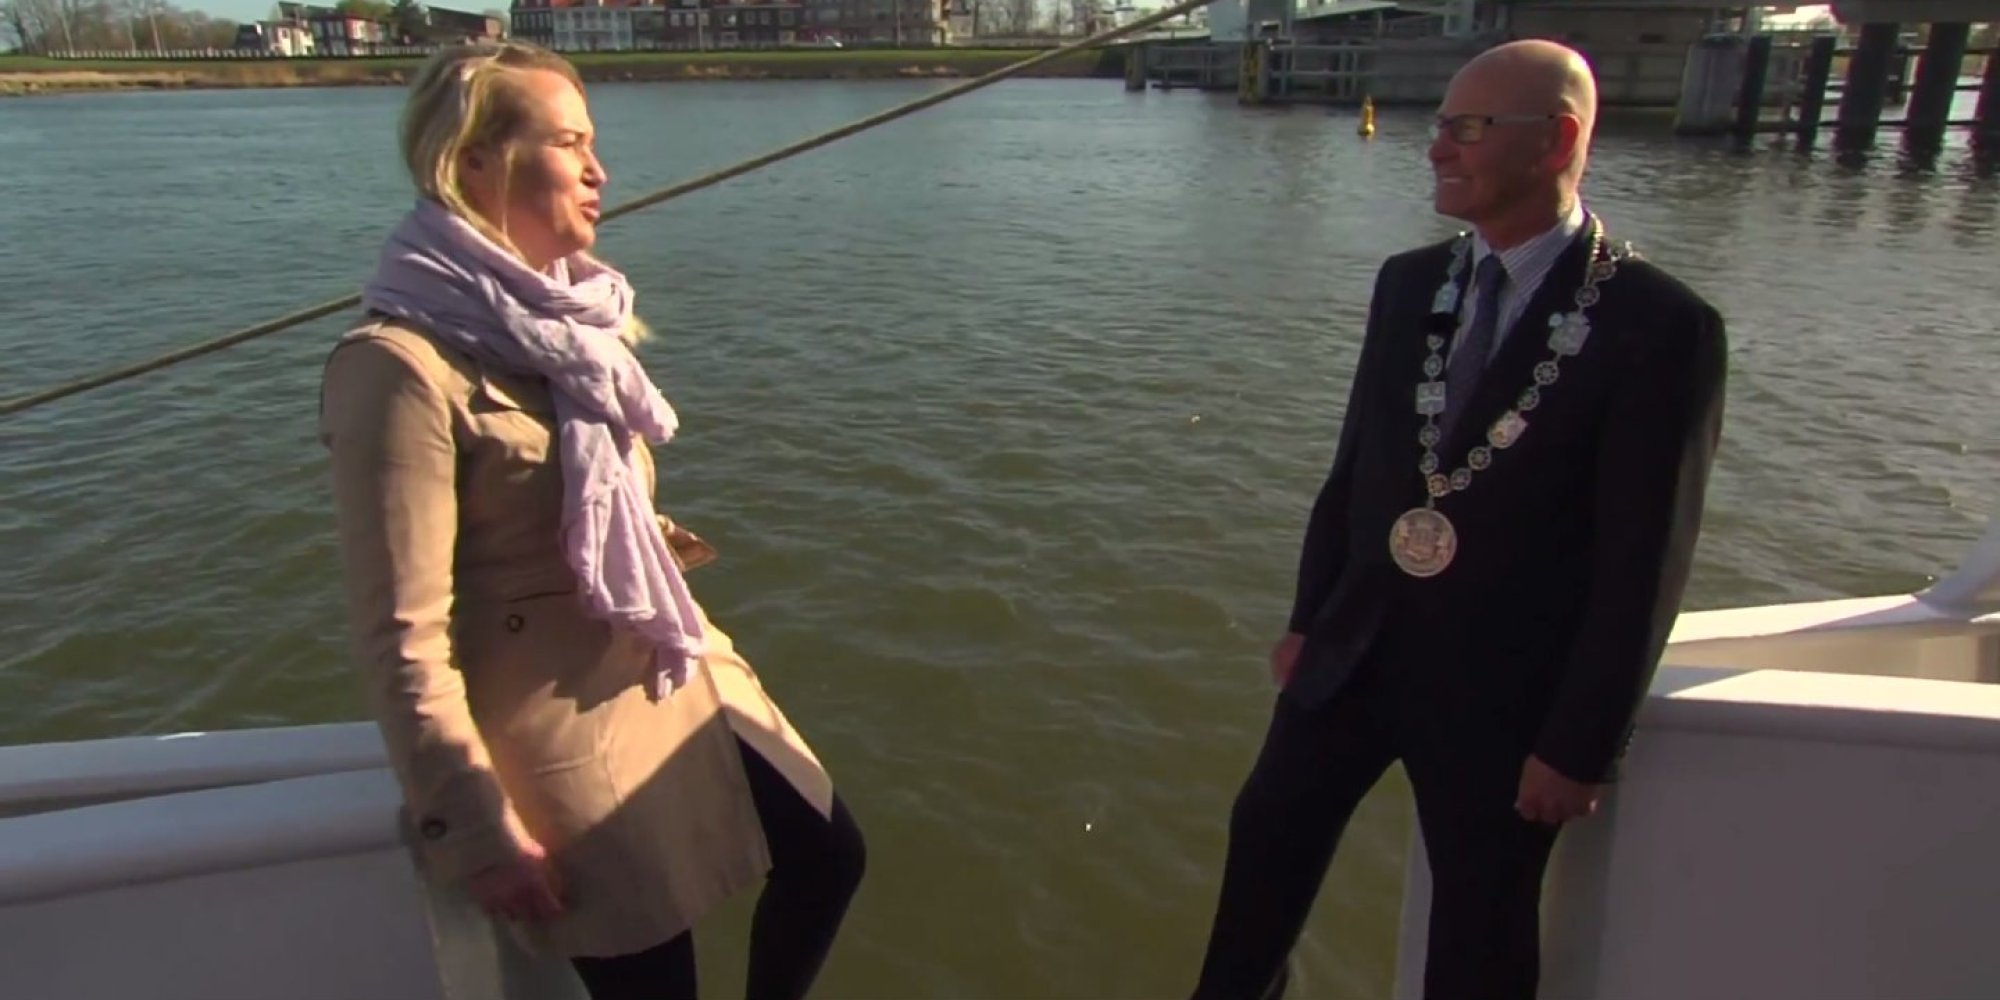 did this dutch interview just go horribly wrong